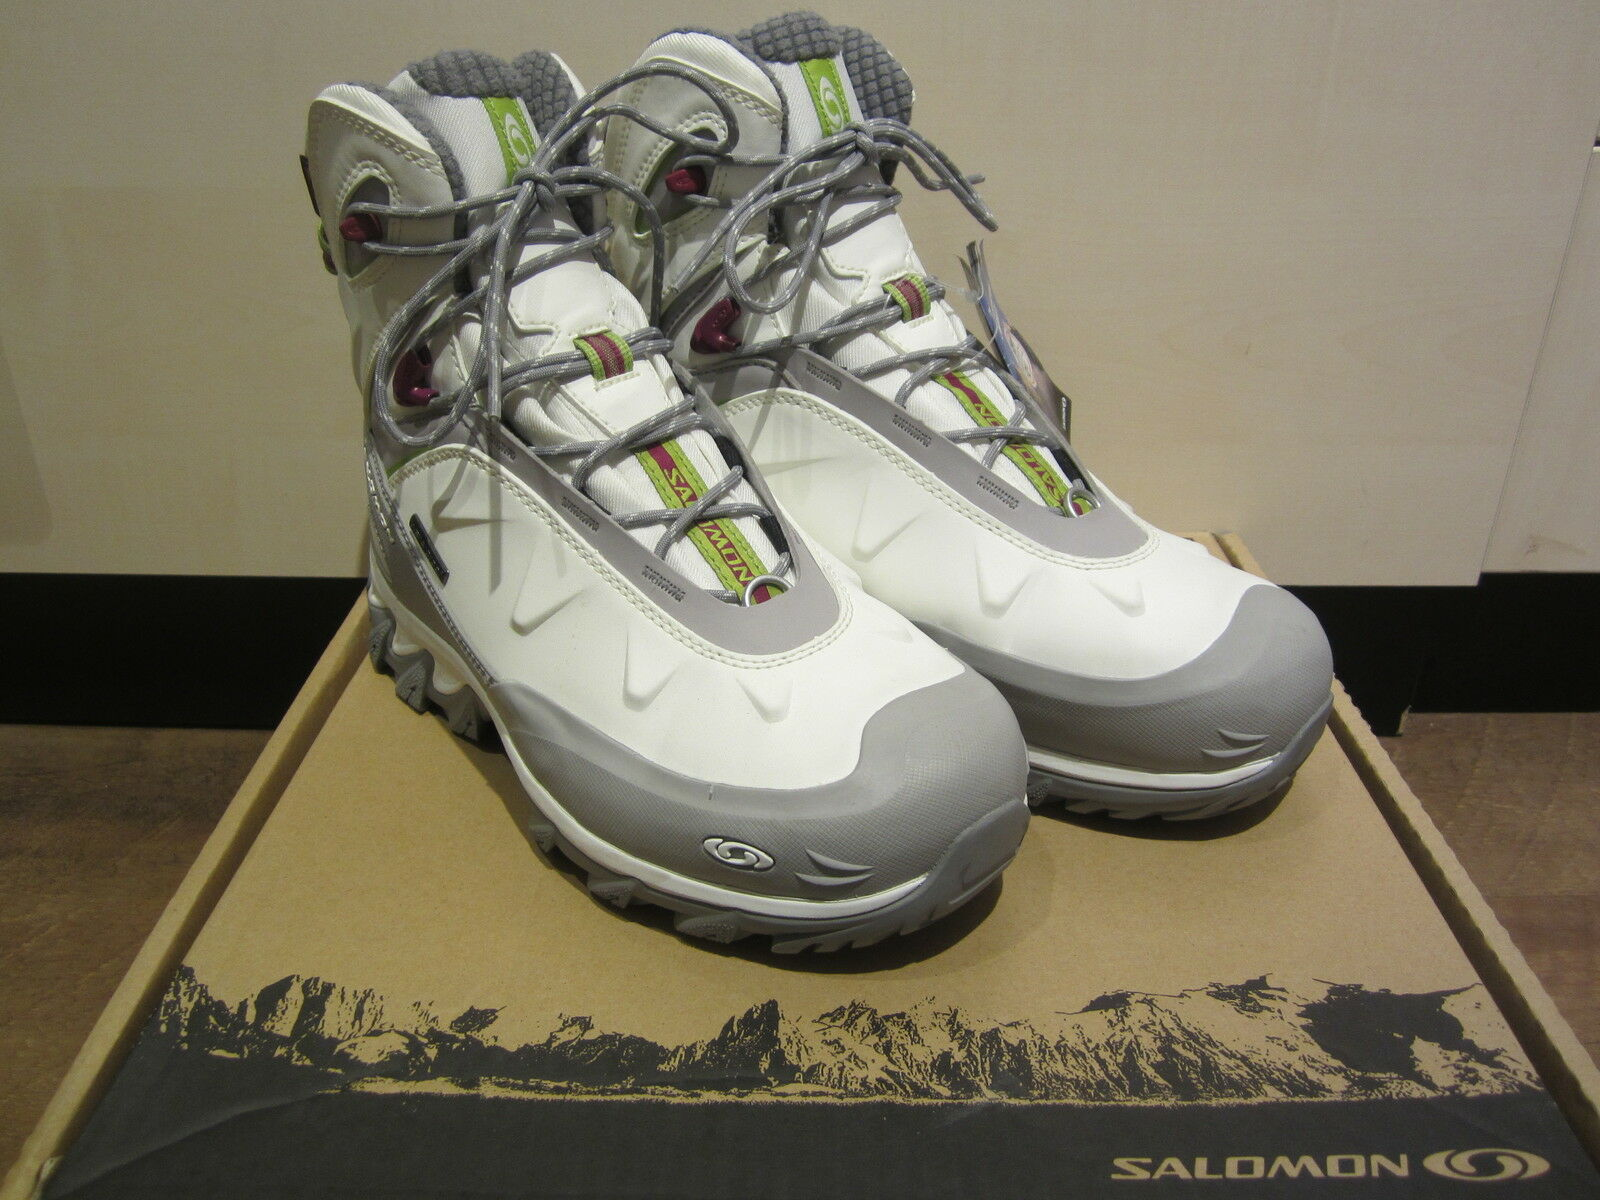 Mr/Ms Salomon boots Z.Lacing, White/Grey, Waterproof NEW Beautiful design Stylish and charming Selling new products